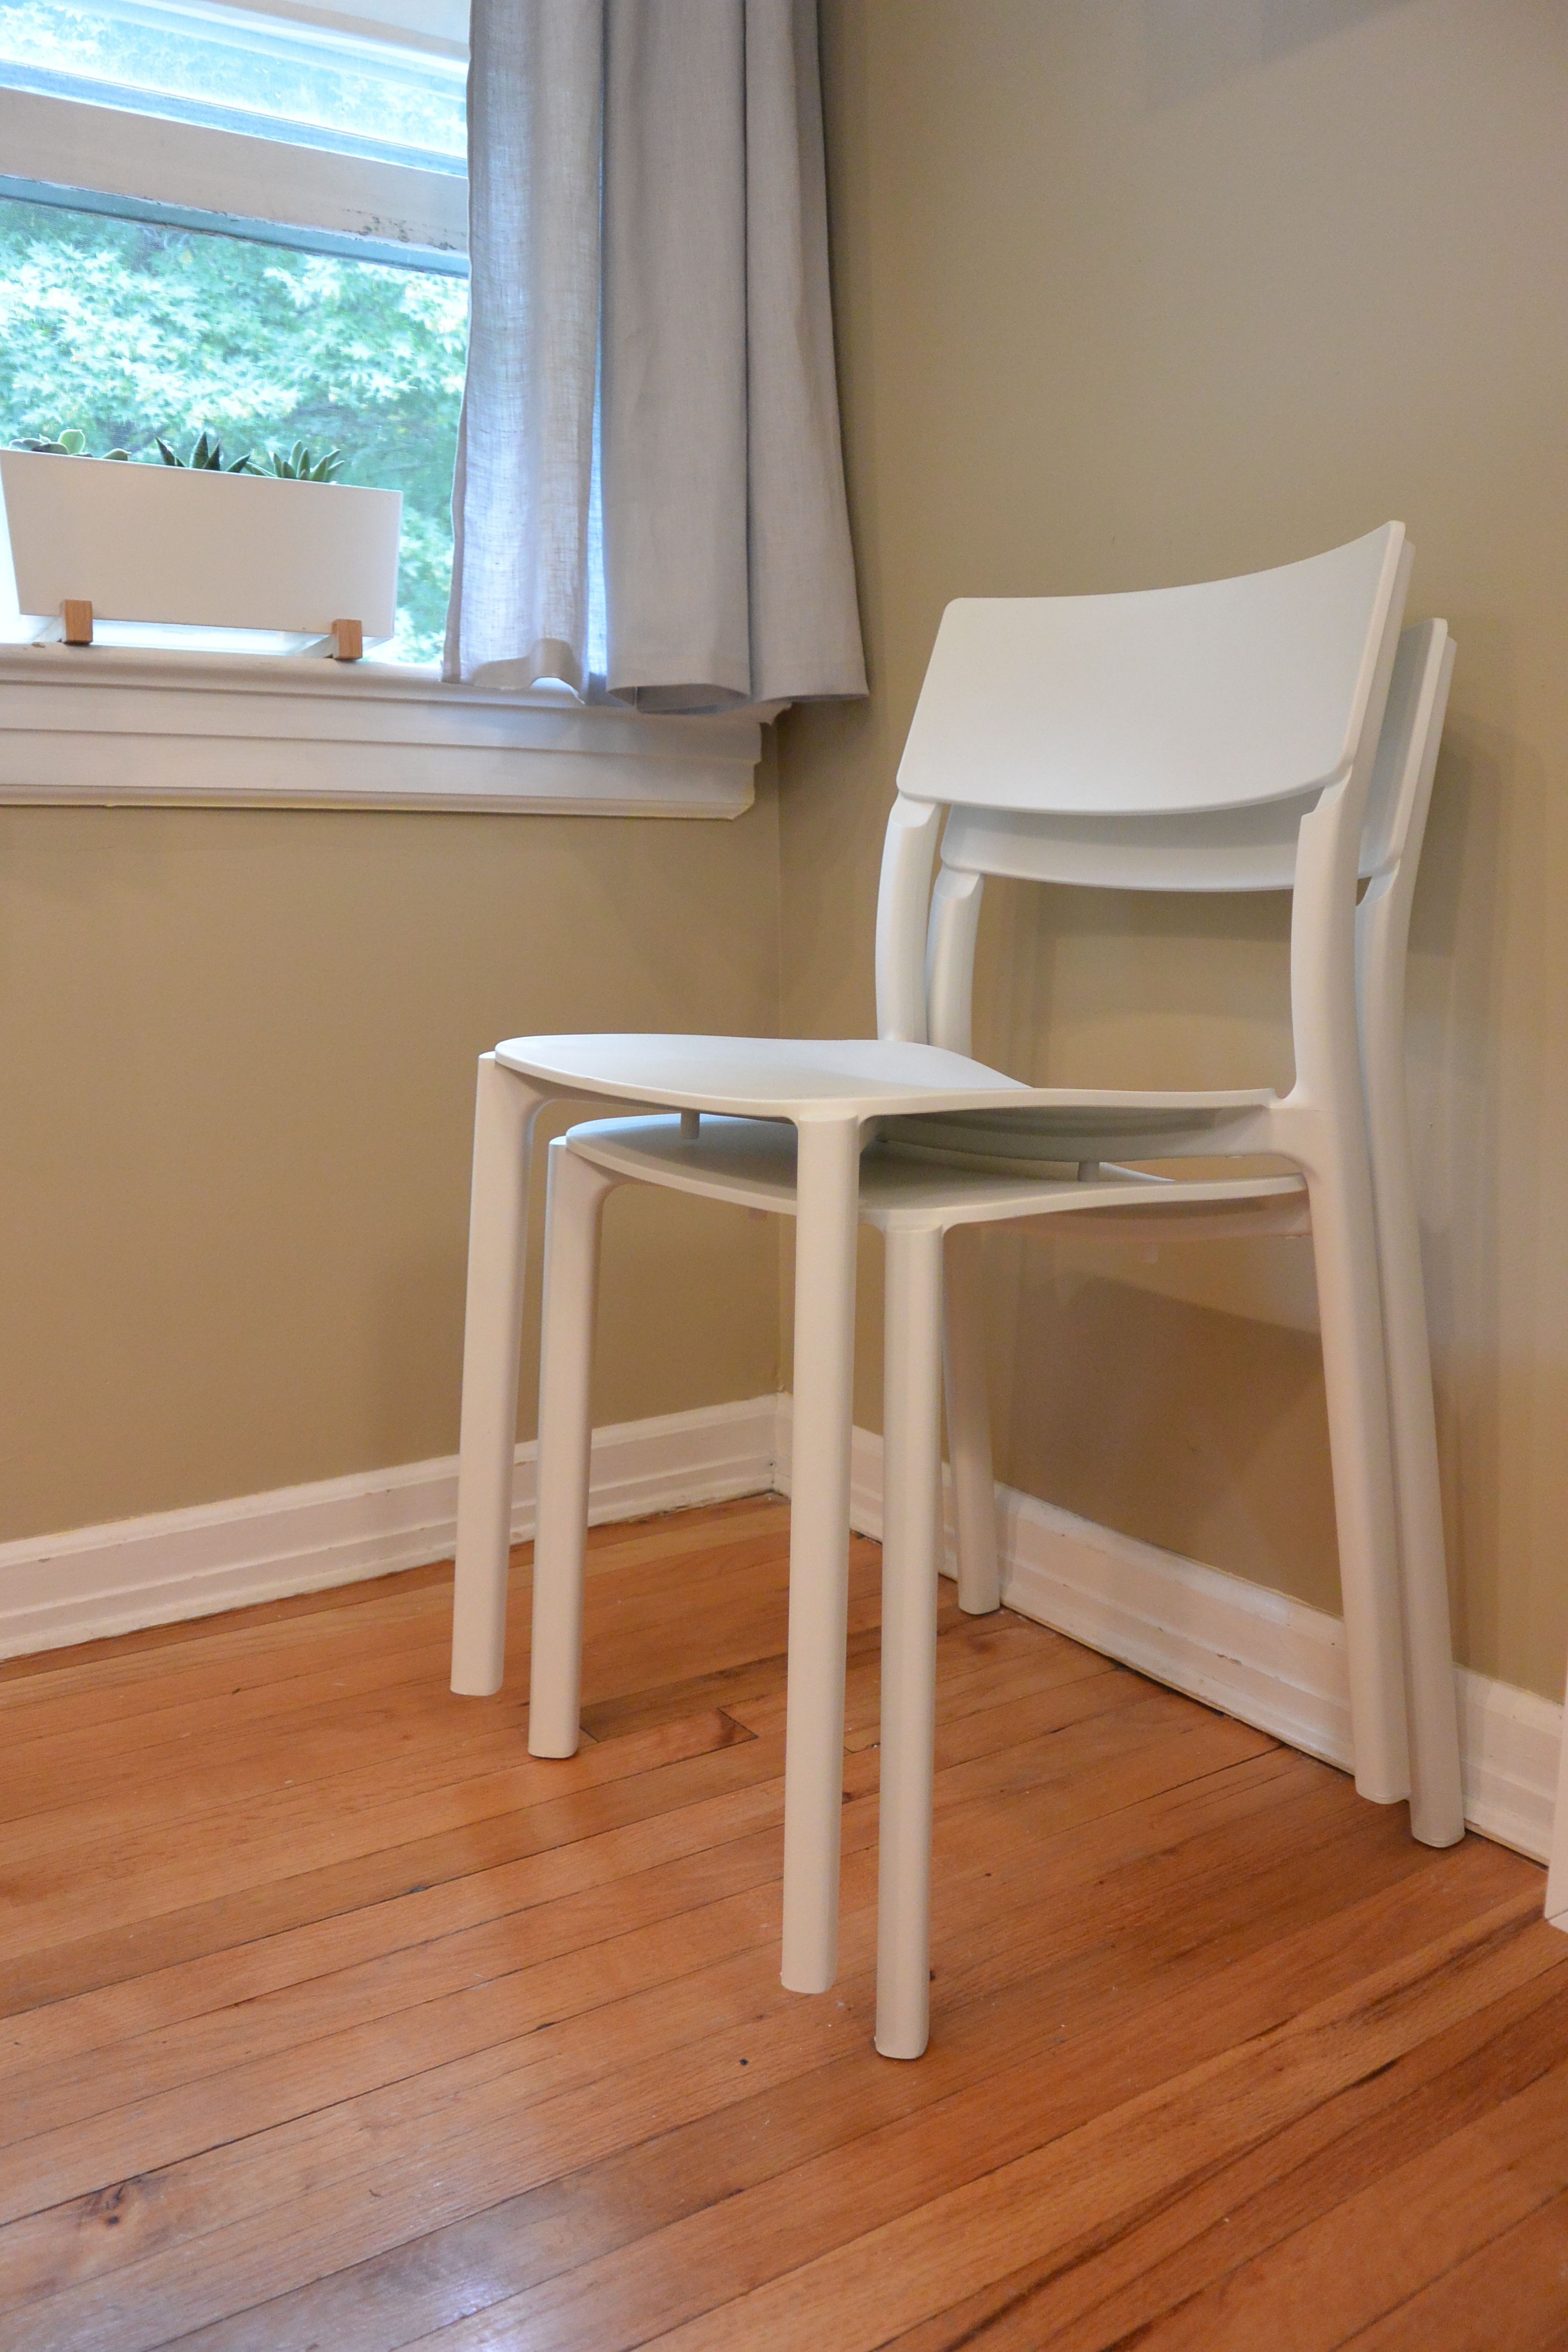 Stackable Chairs For Less Folding Chair Black Ikea Janinge Are So They Take Up Space When You Re Not Using Them Perfect A Small